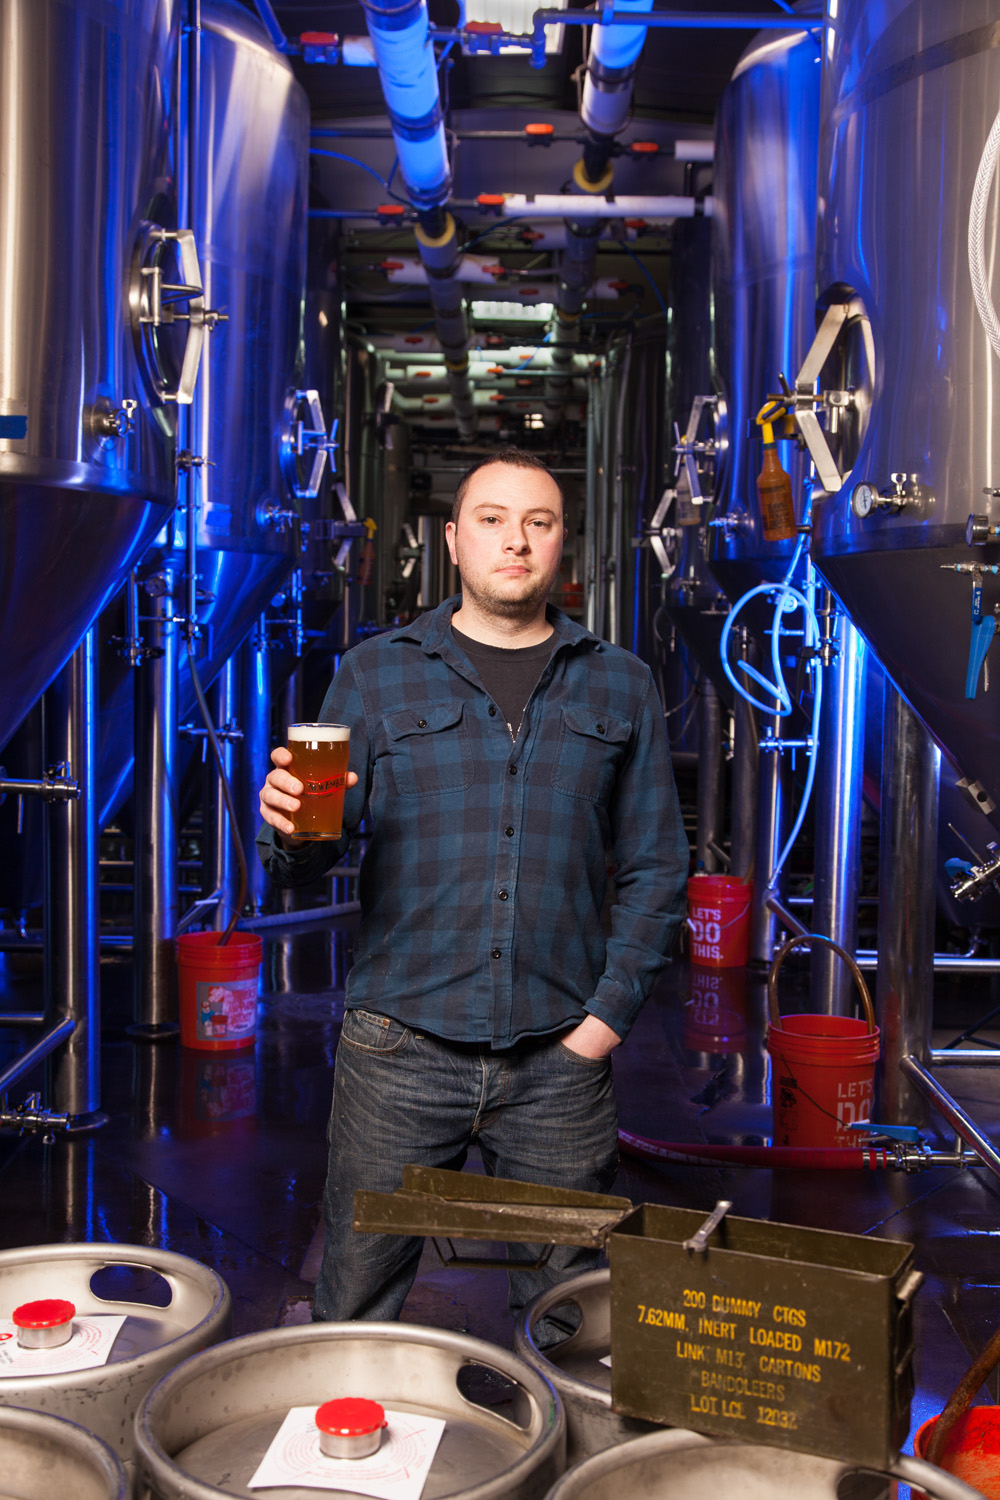 Matt Westfall, Head Brewer at New England Brewing Co. Woodbridge, CT Established in 2001